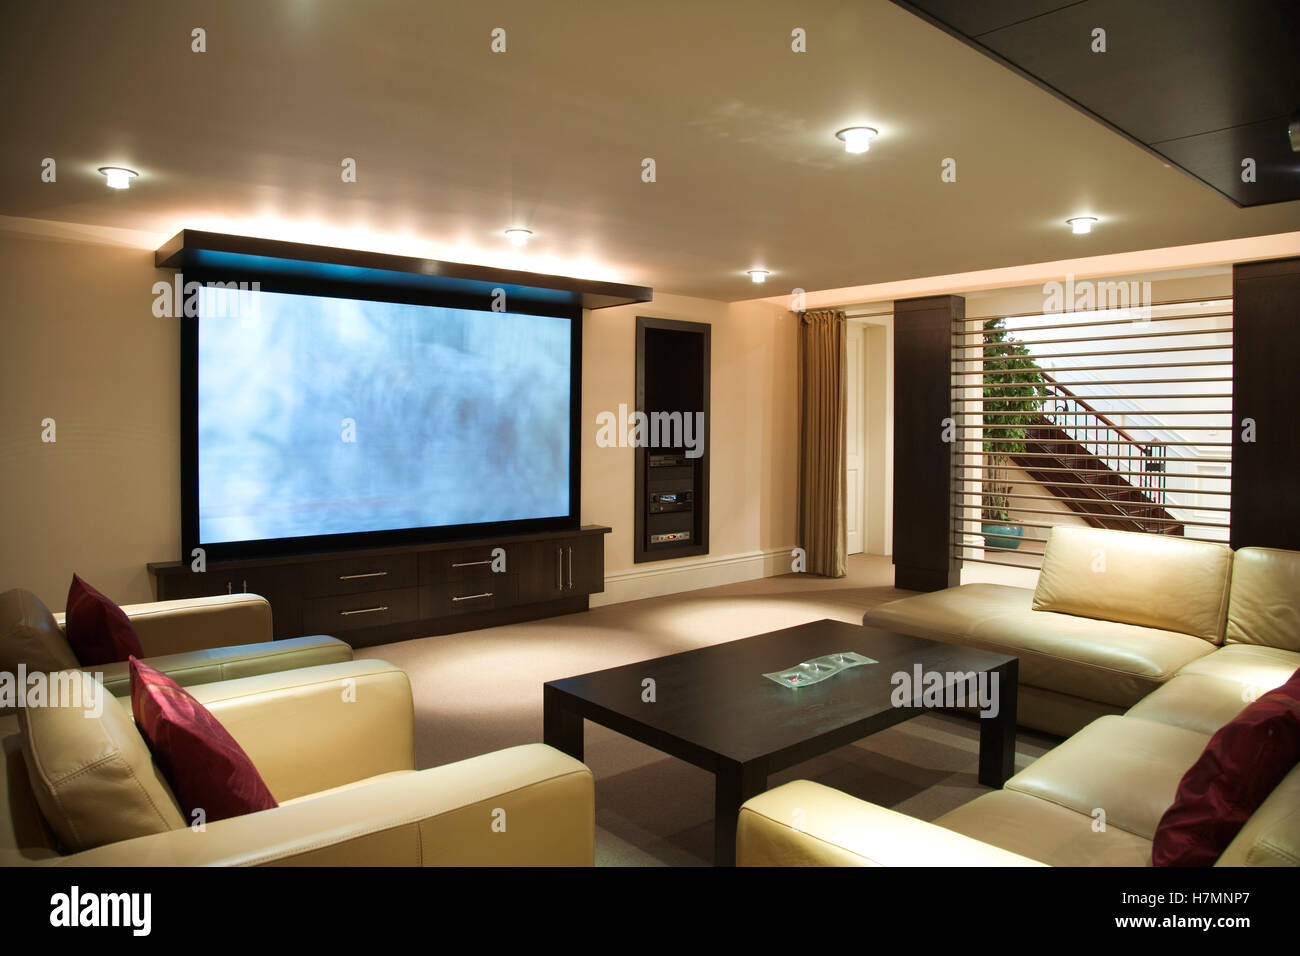 Entertainment Room With Big Screen Tv Stock Photo Alamy